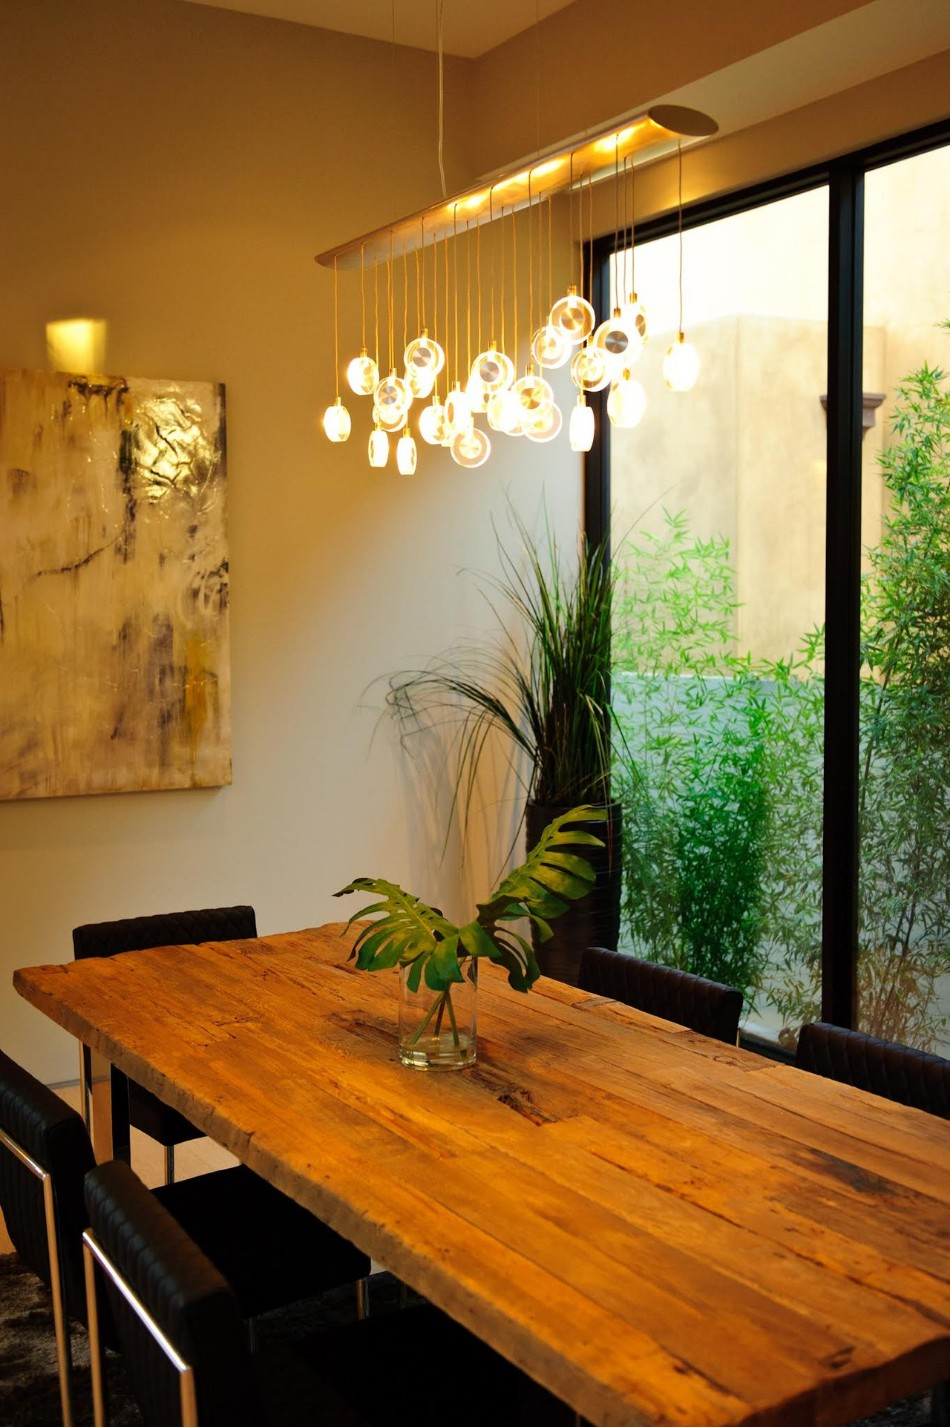 eco-friendly dining room Go Green: 10 Ideas For An Eco-friendly Dining Room 2183c56f0c506cd87b6075554ca58b6e